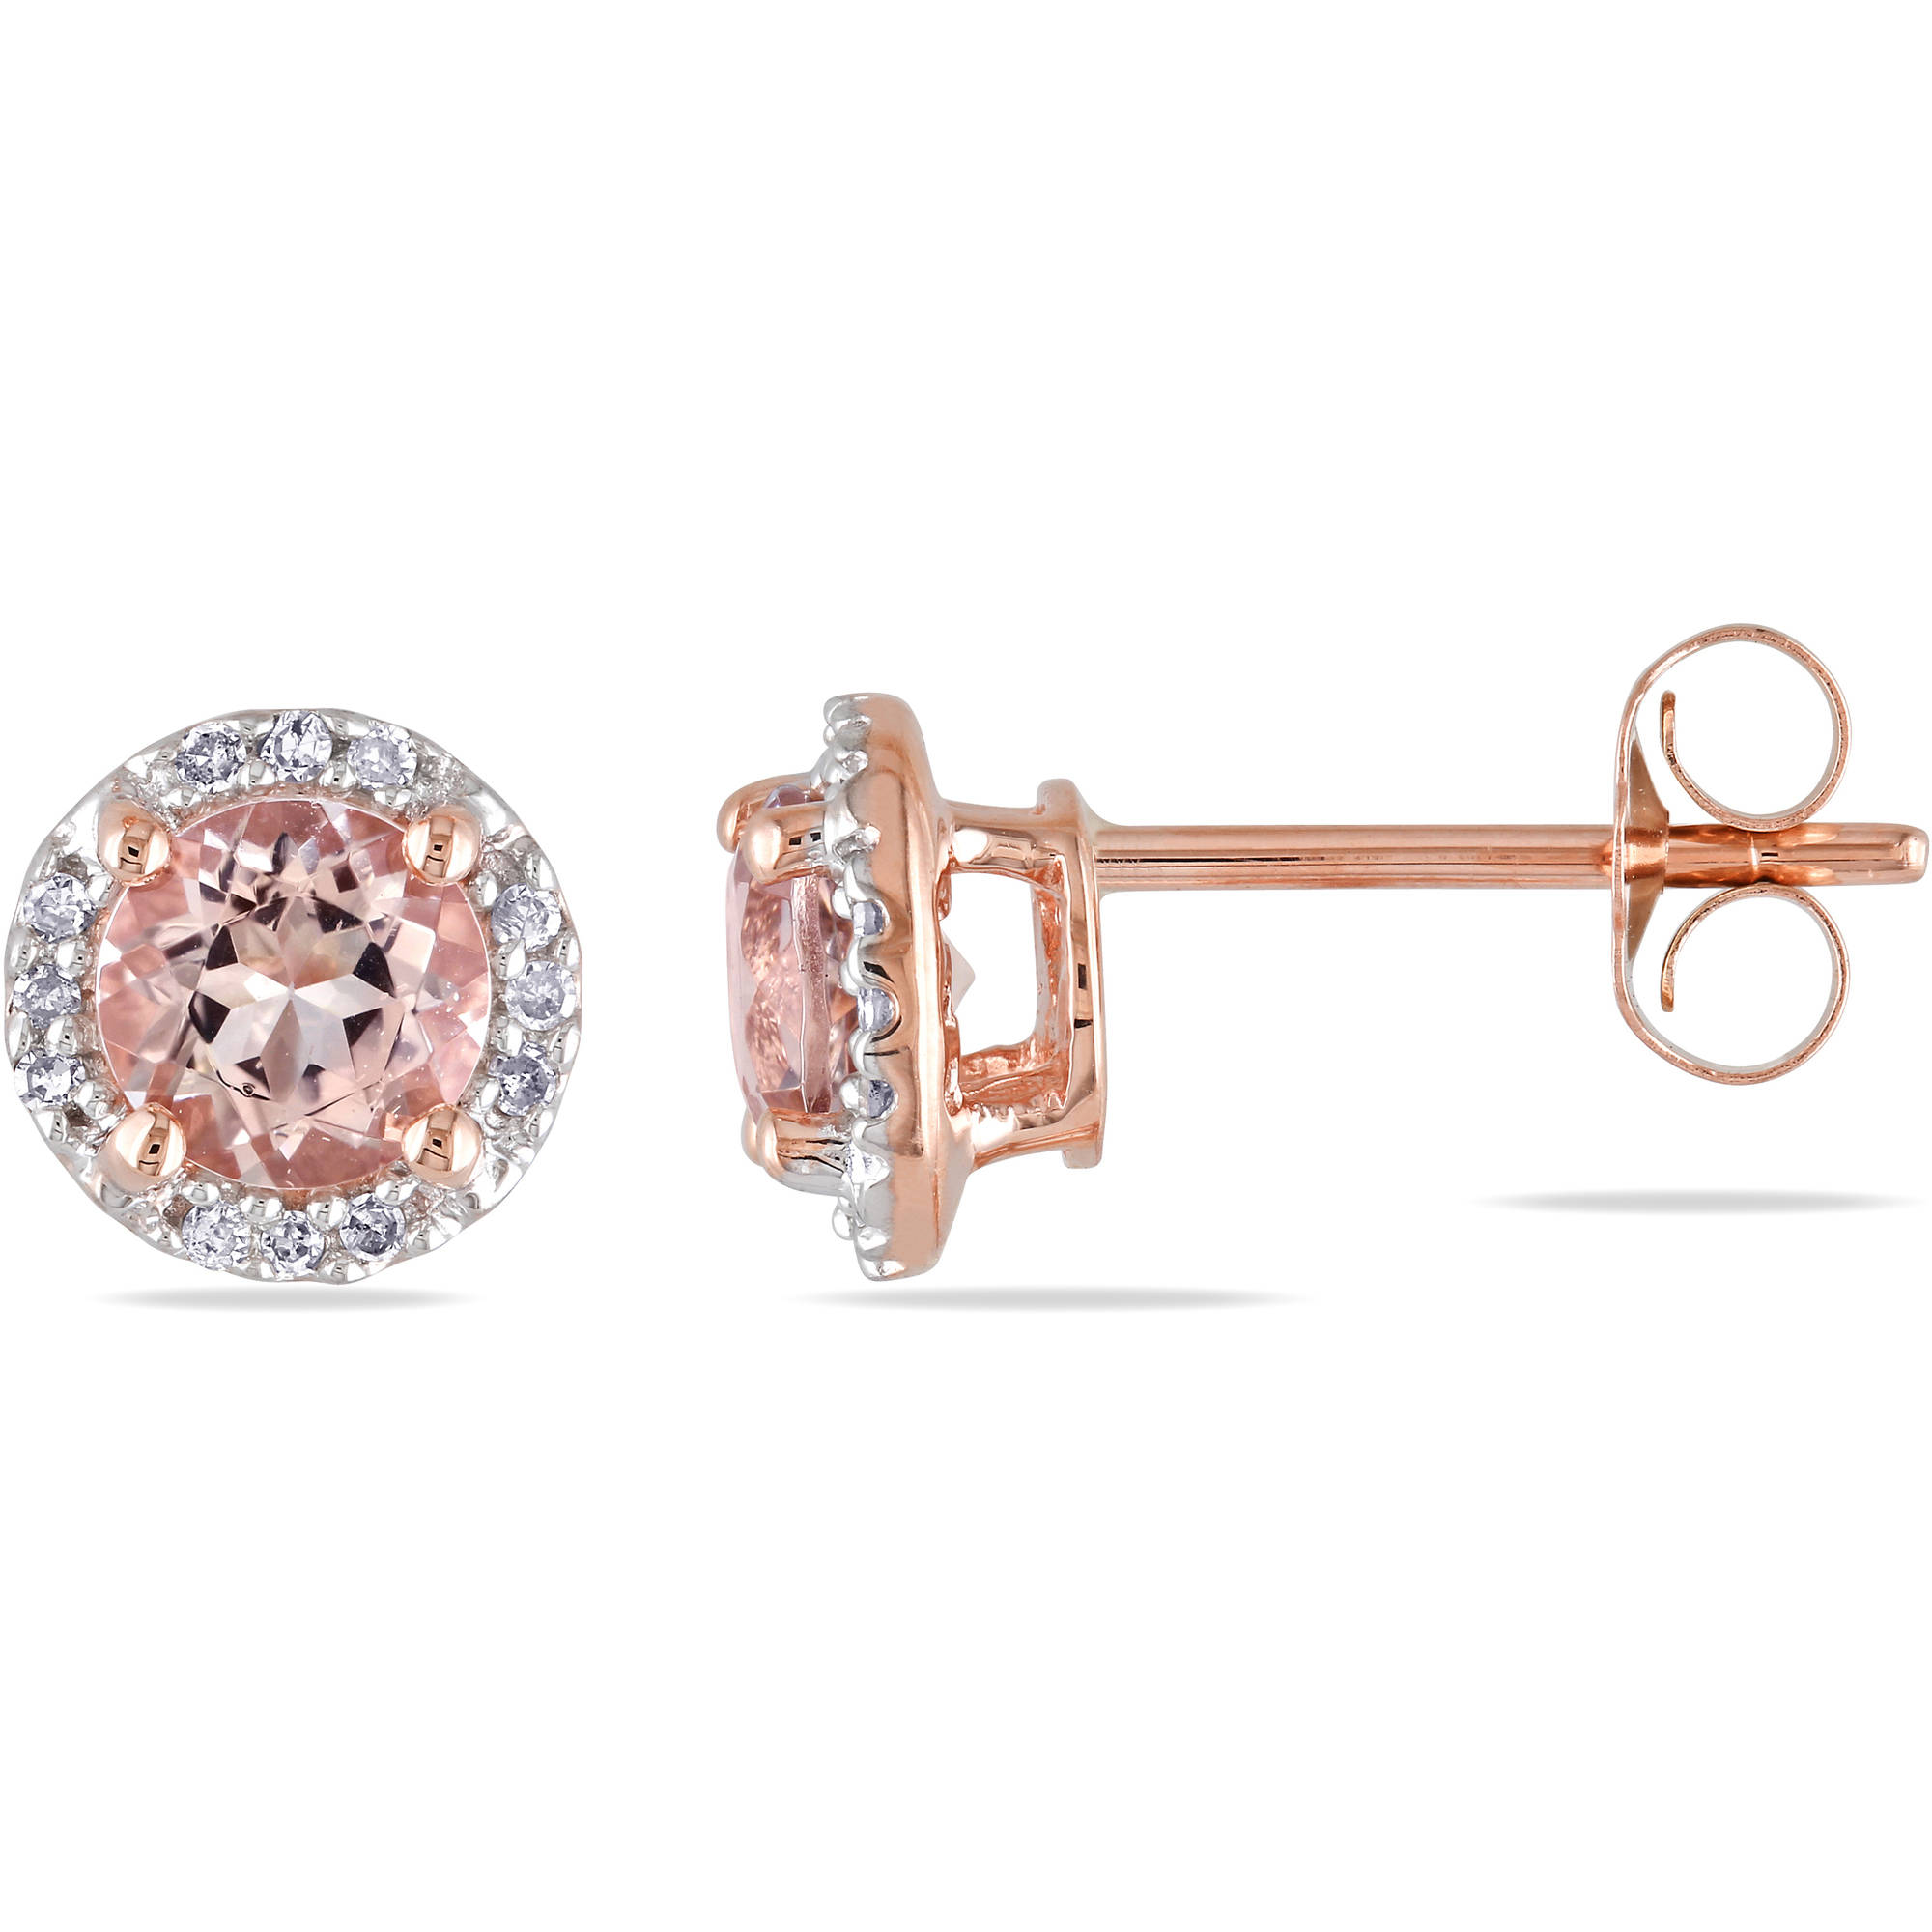 1 Carat T.G.W. Morganite and Diamond-Accent 10kt Pink Gold Halo Stud Earrings by